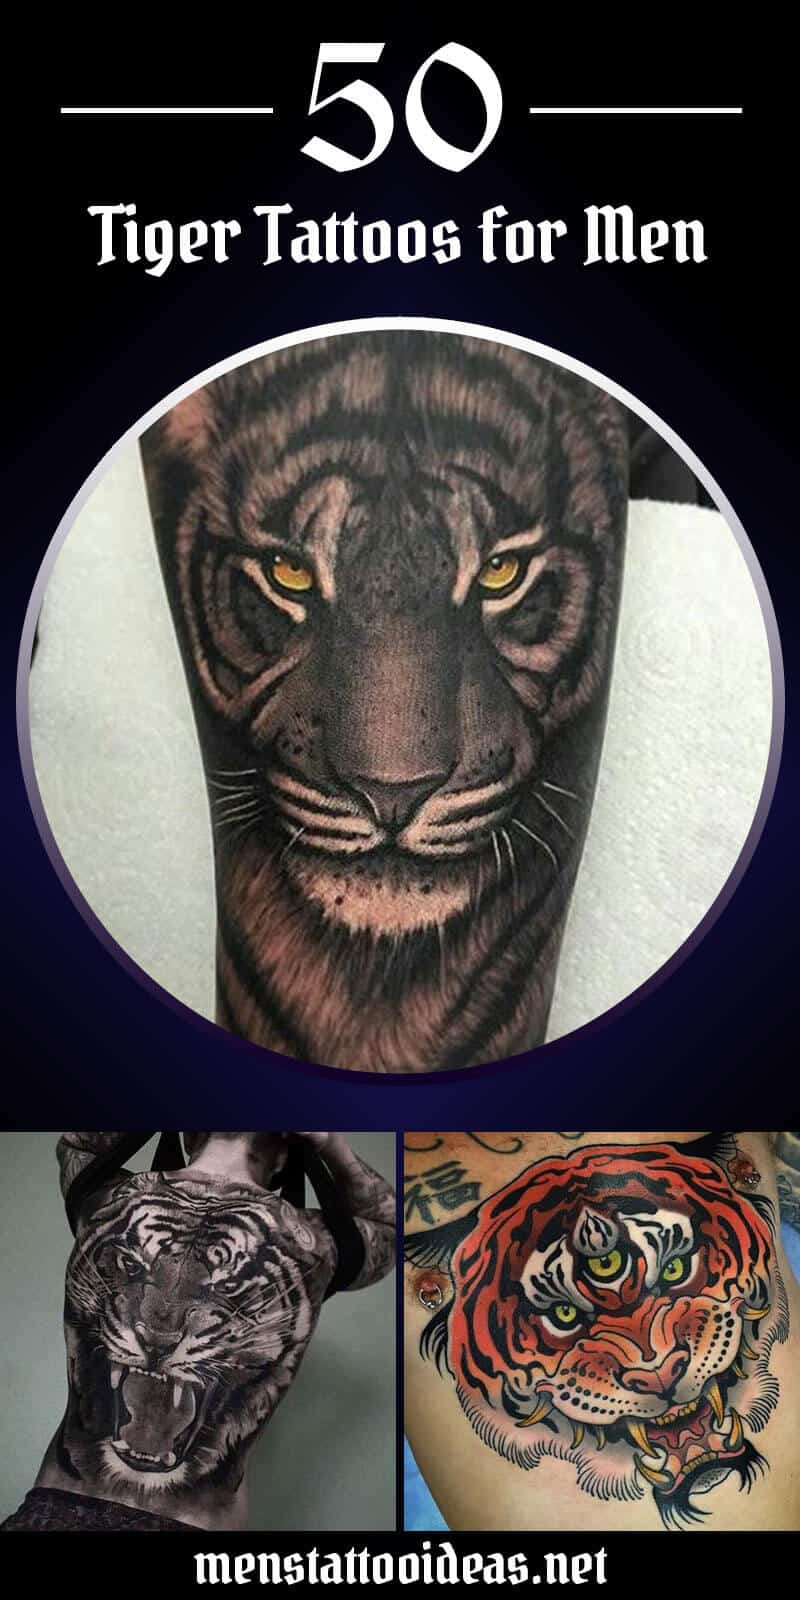 0d934df37 Tiger Tattoos for Men - Ideas and Designs for Guys